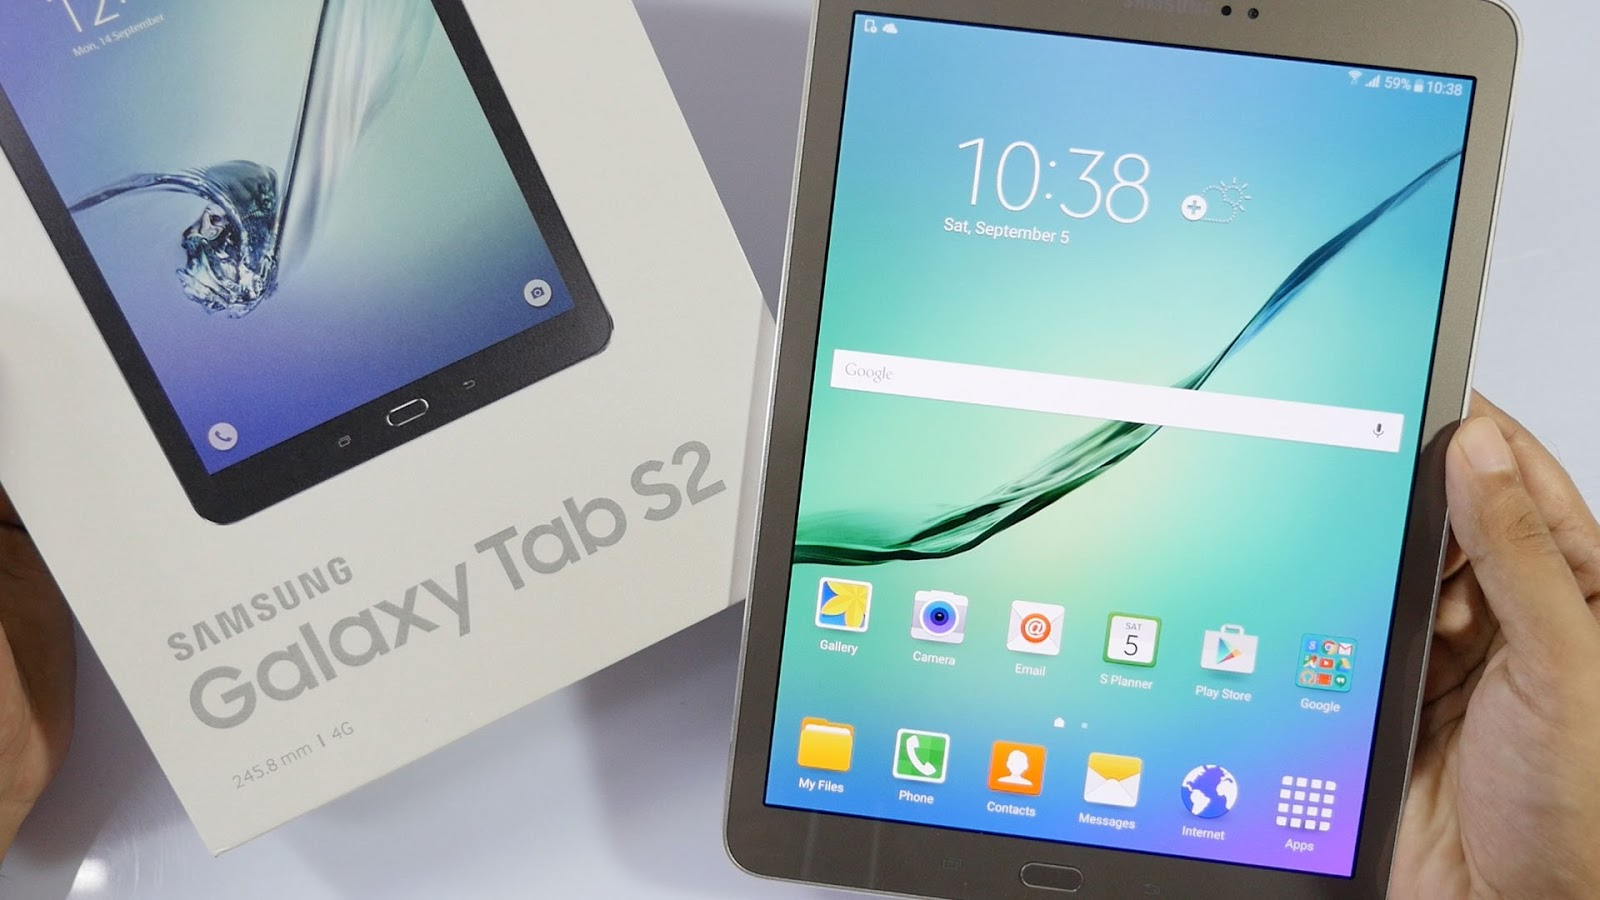 Samsung Galaxy Tab S2 9 7 LineageOS 15 ROM arrives with